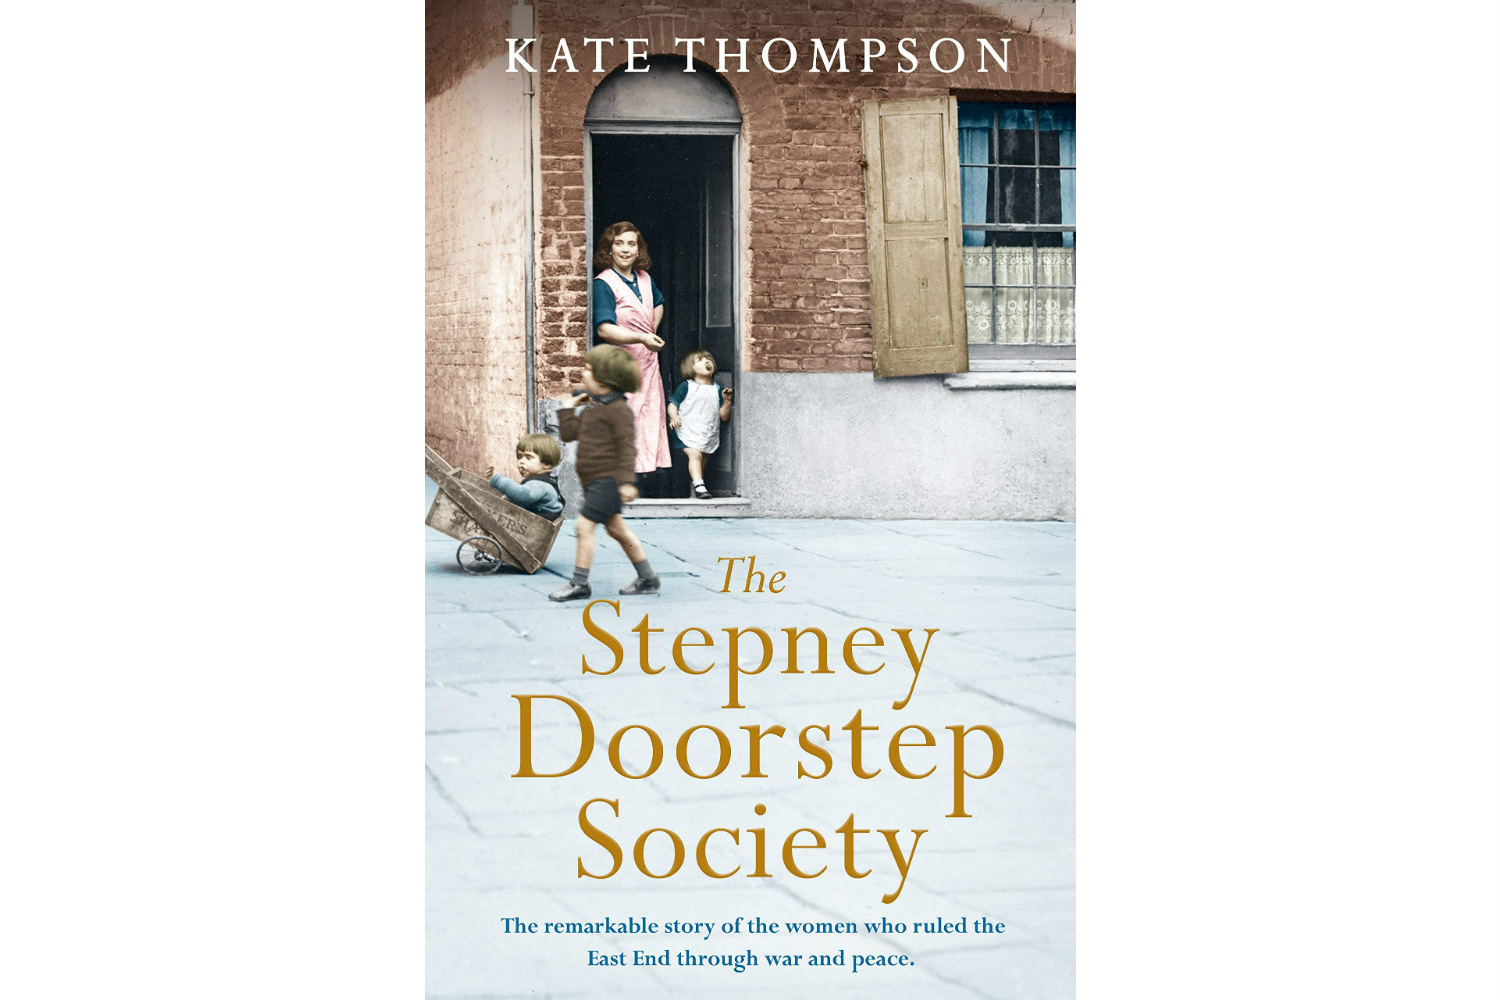 The Stepney Doorstep Society by Kate Thompson